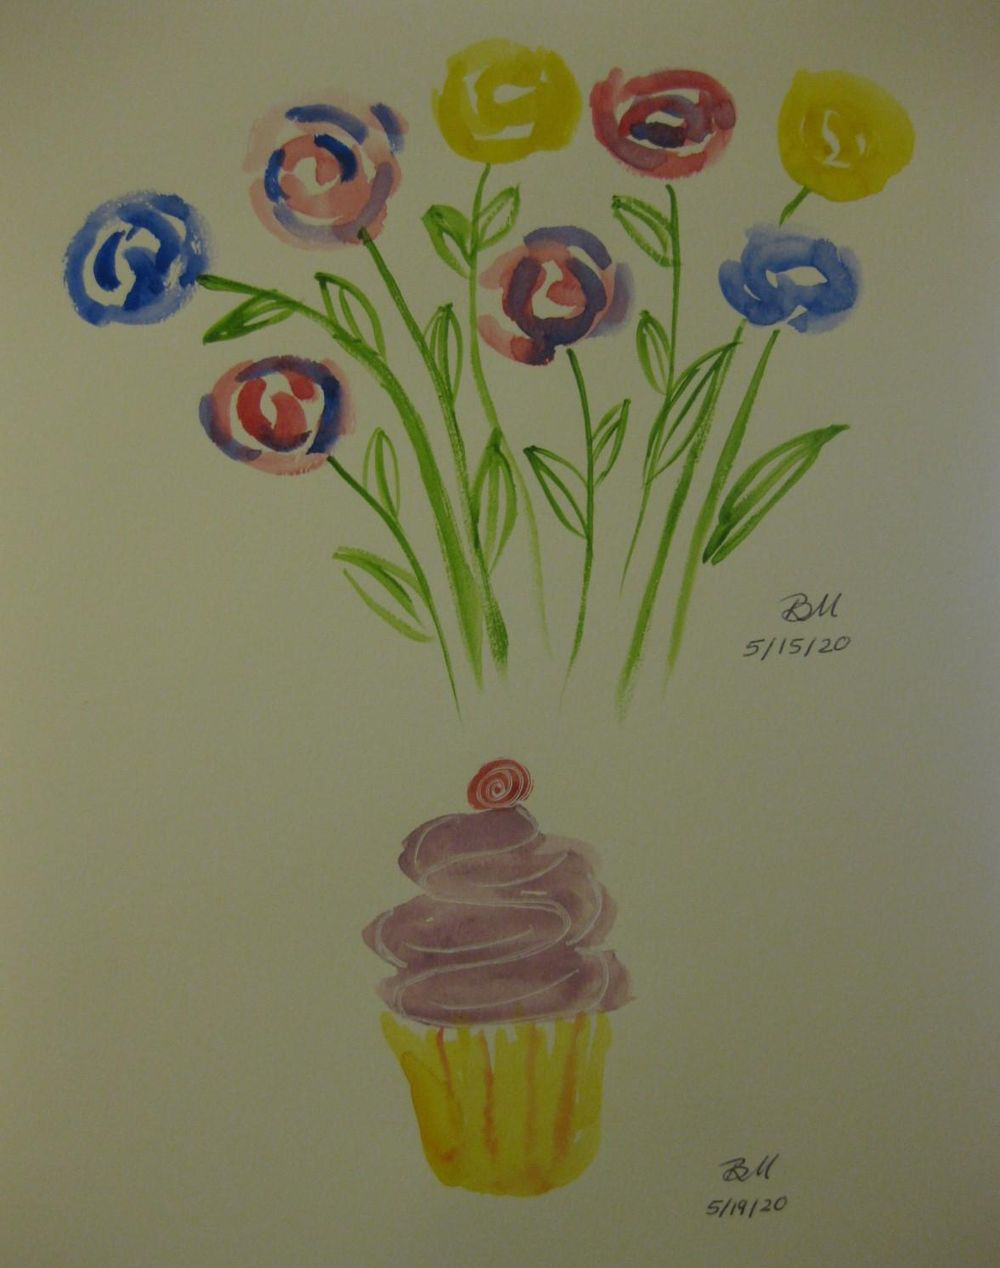 Flowers and a cupcake - image 1 - student project